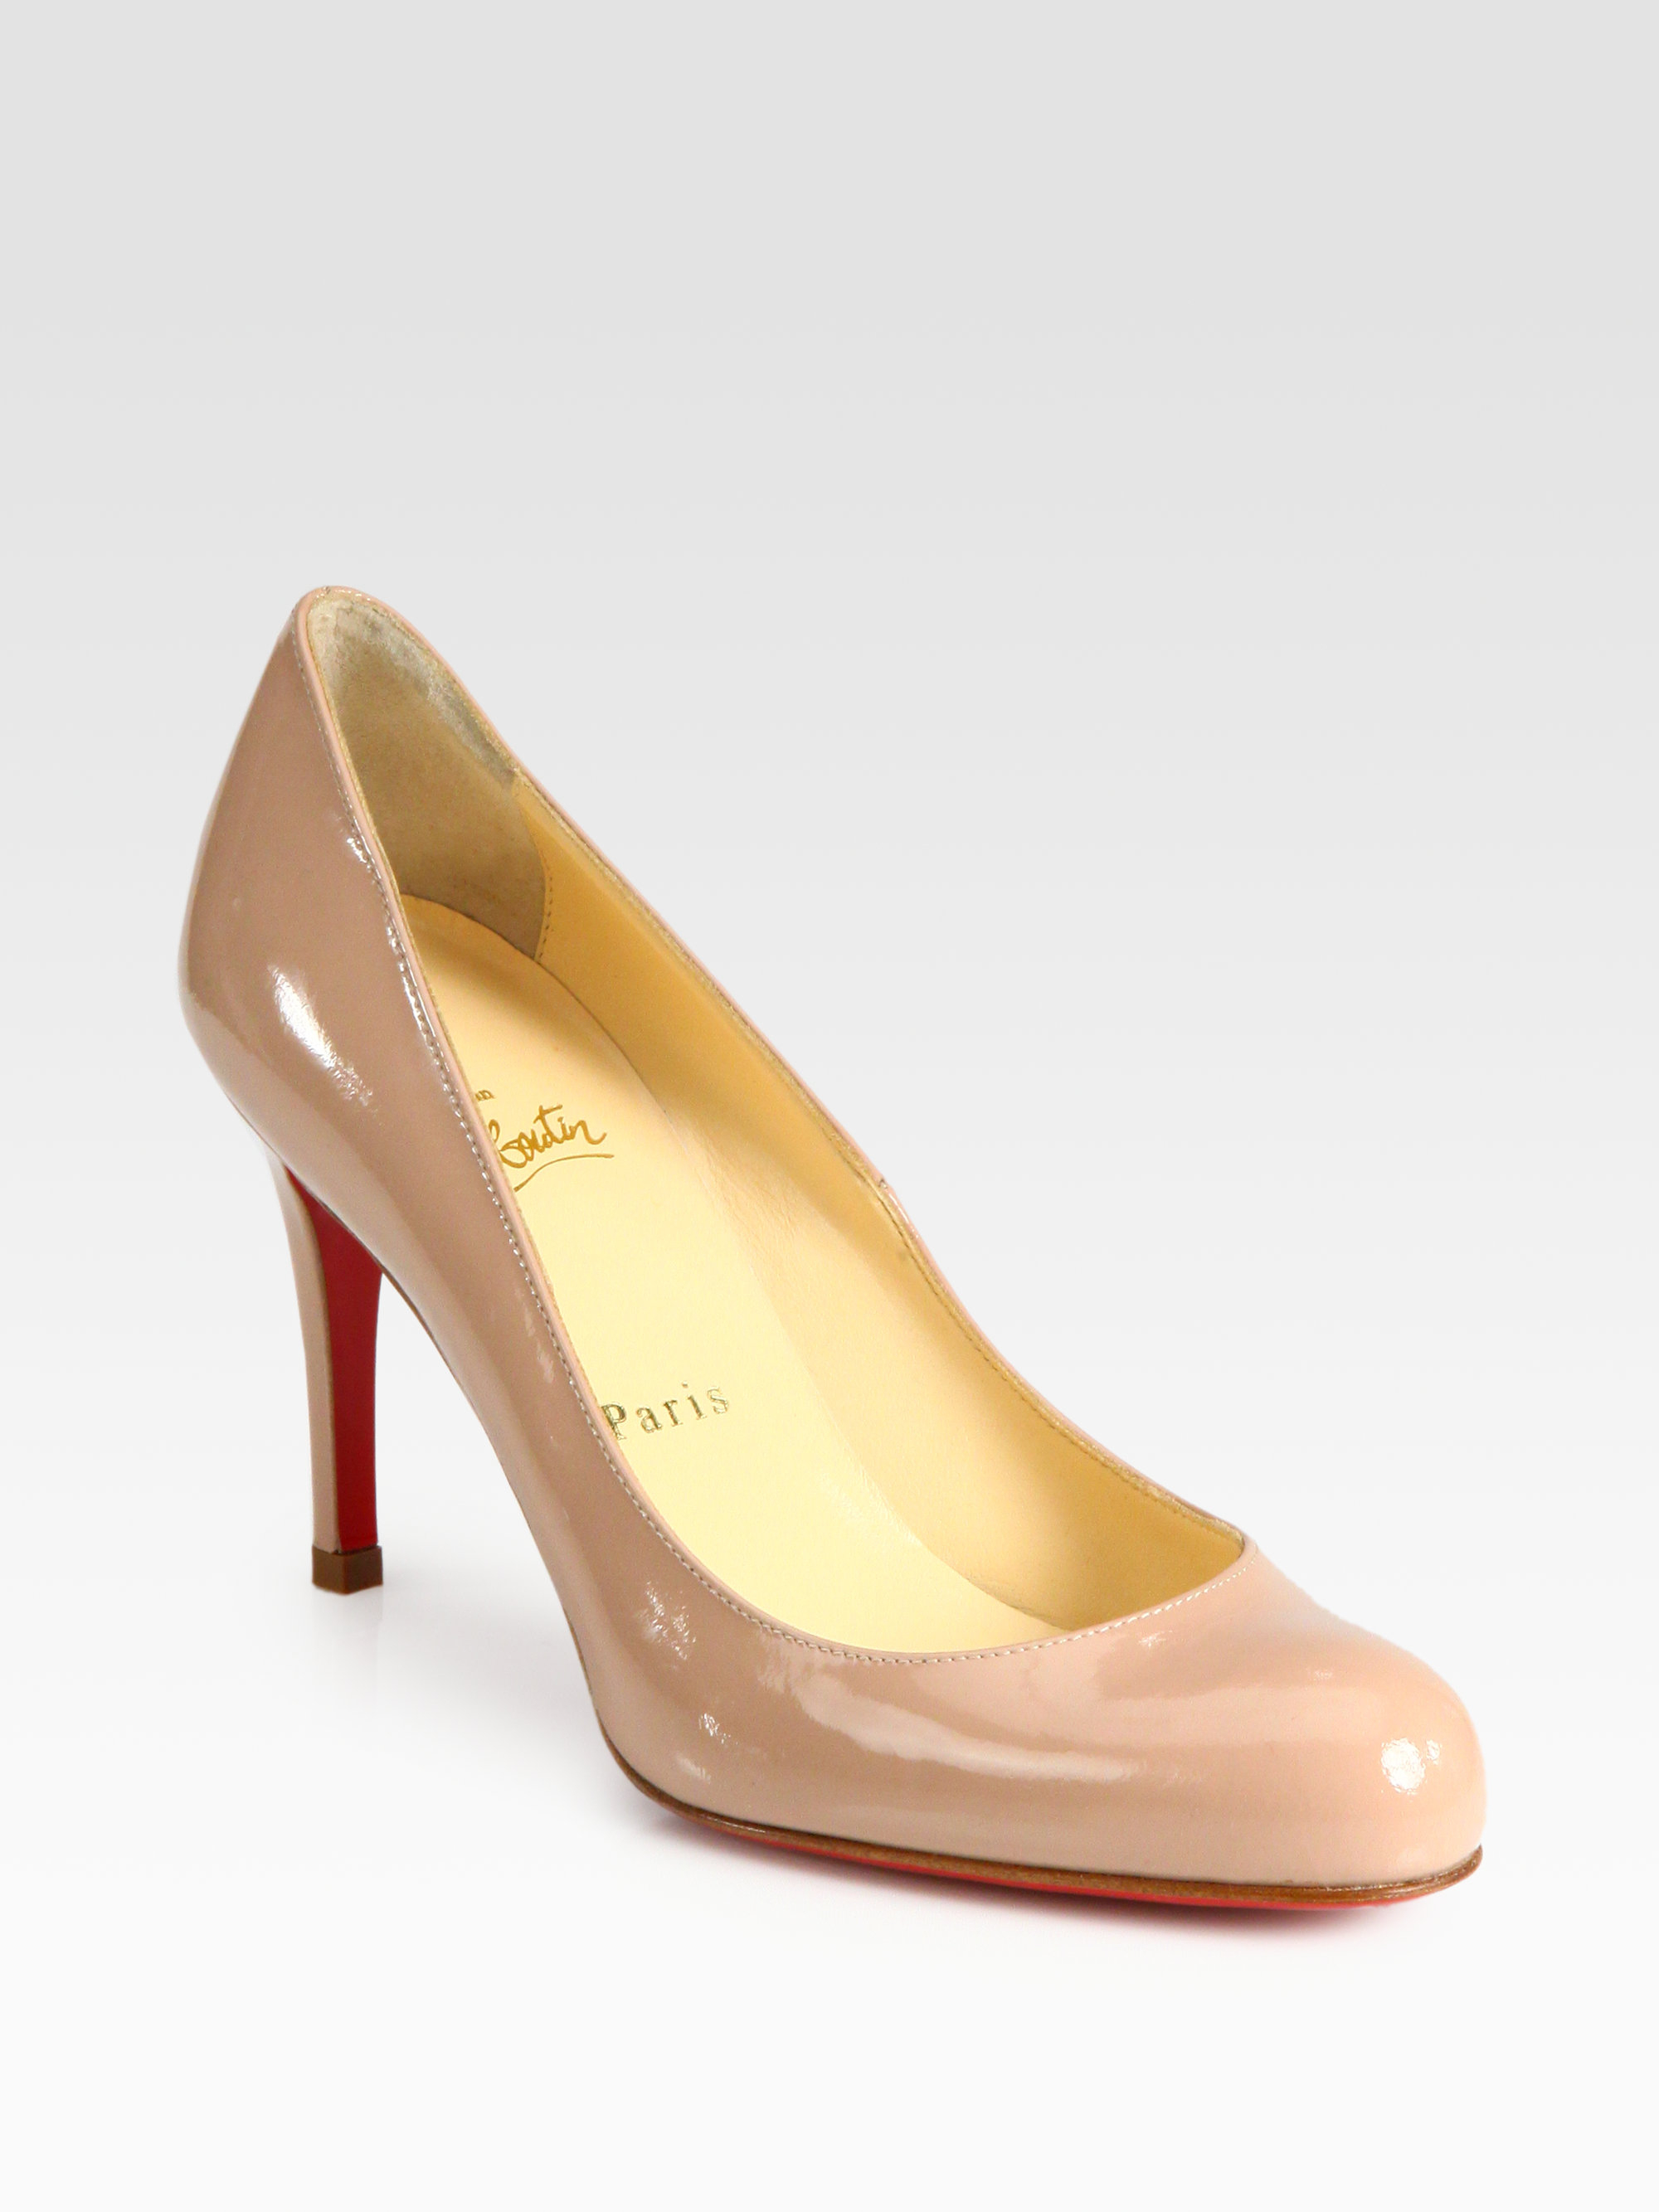 christian louboutin round-toe wedges Red patent leather covered ...